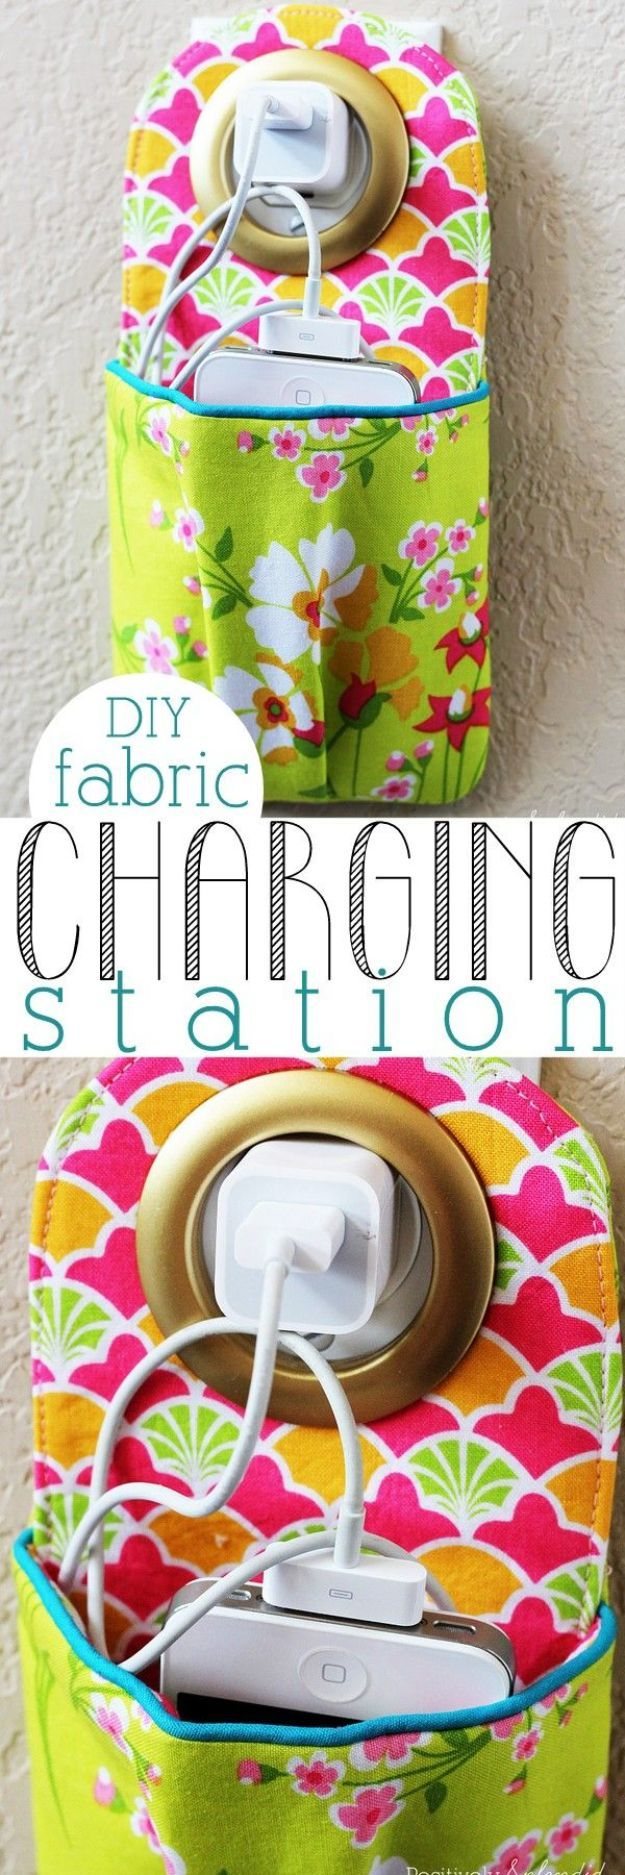 Easy DIY Charging Station--this is super cute! Maybe I will dust of my sewing machine to make a few of these. They would make great gifts!